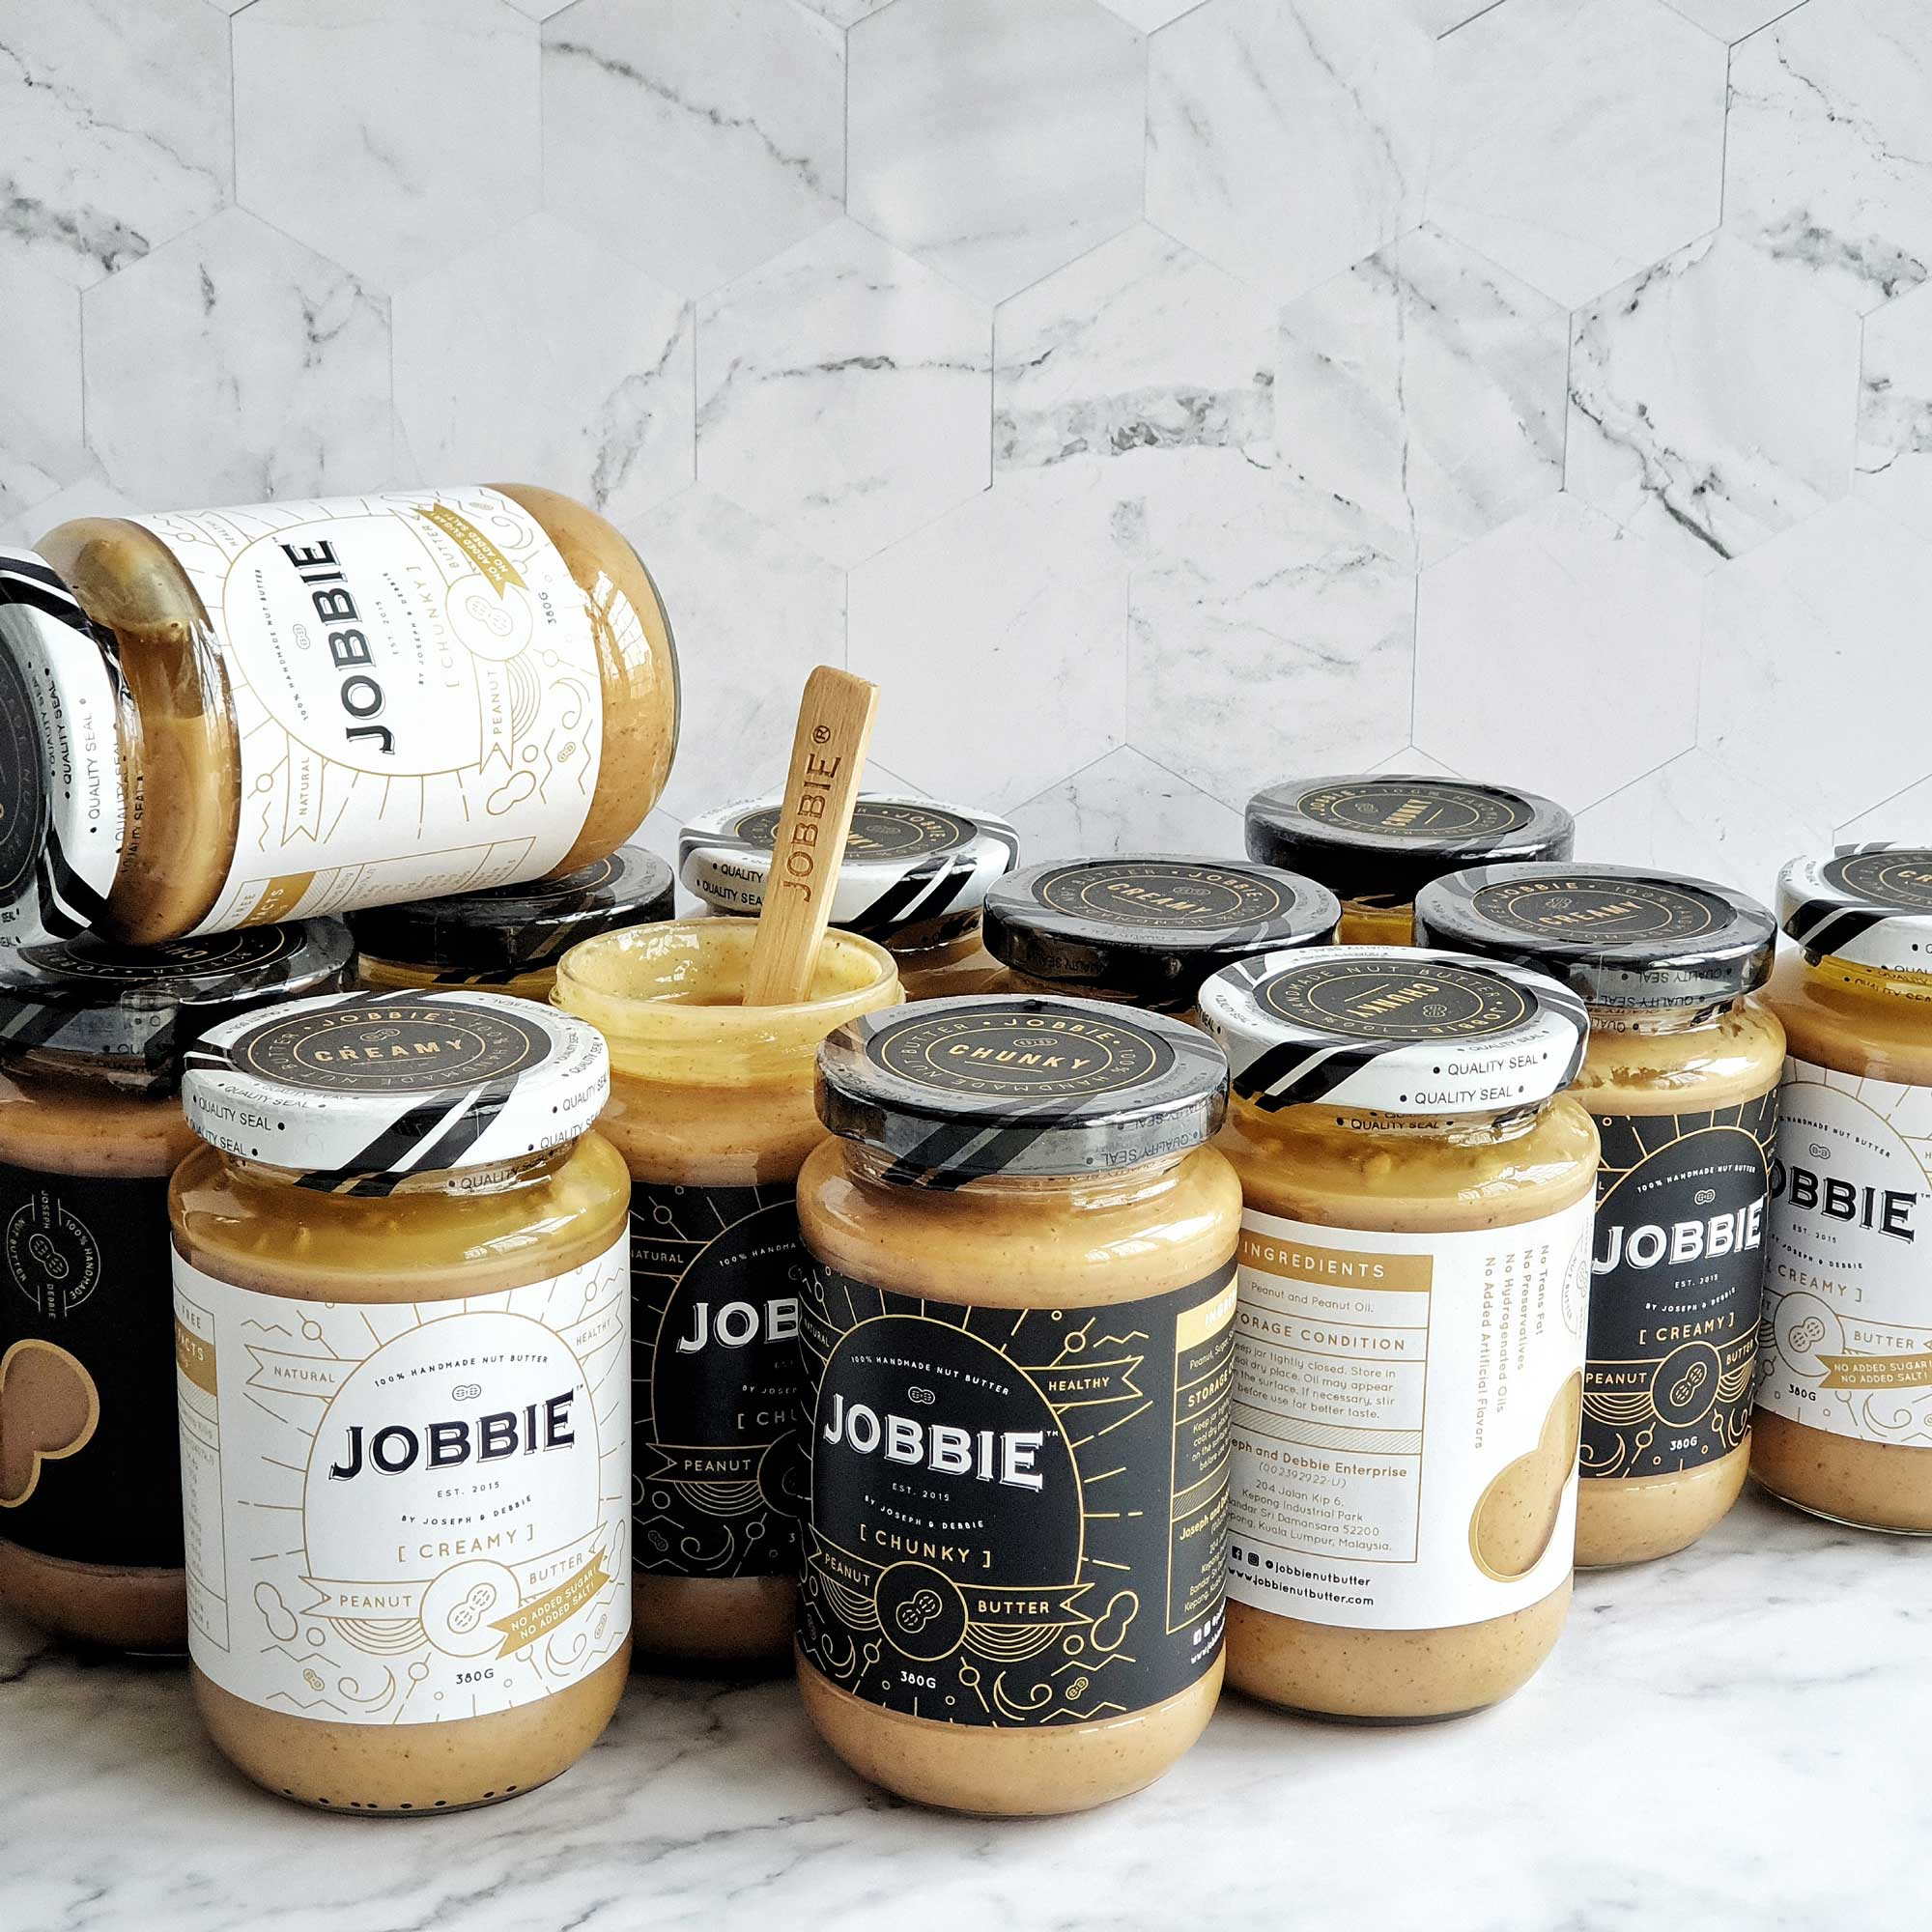 JOBBIE NUT BUTTER - Get natural peanut butter delivered to your doorstep |